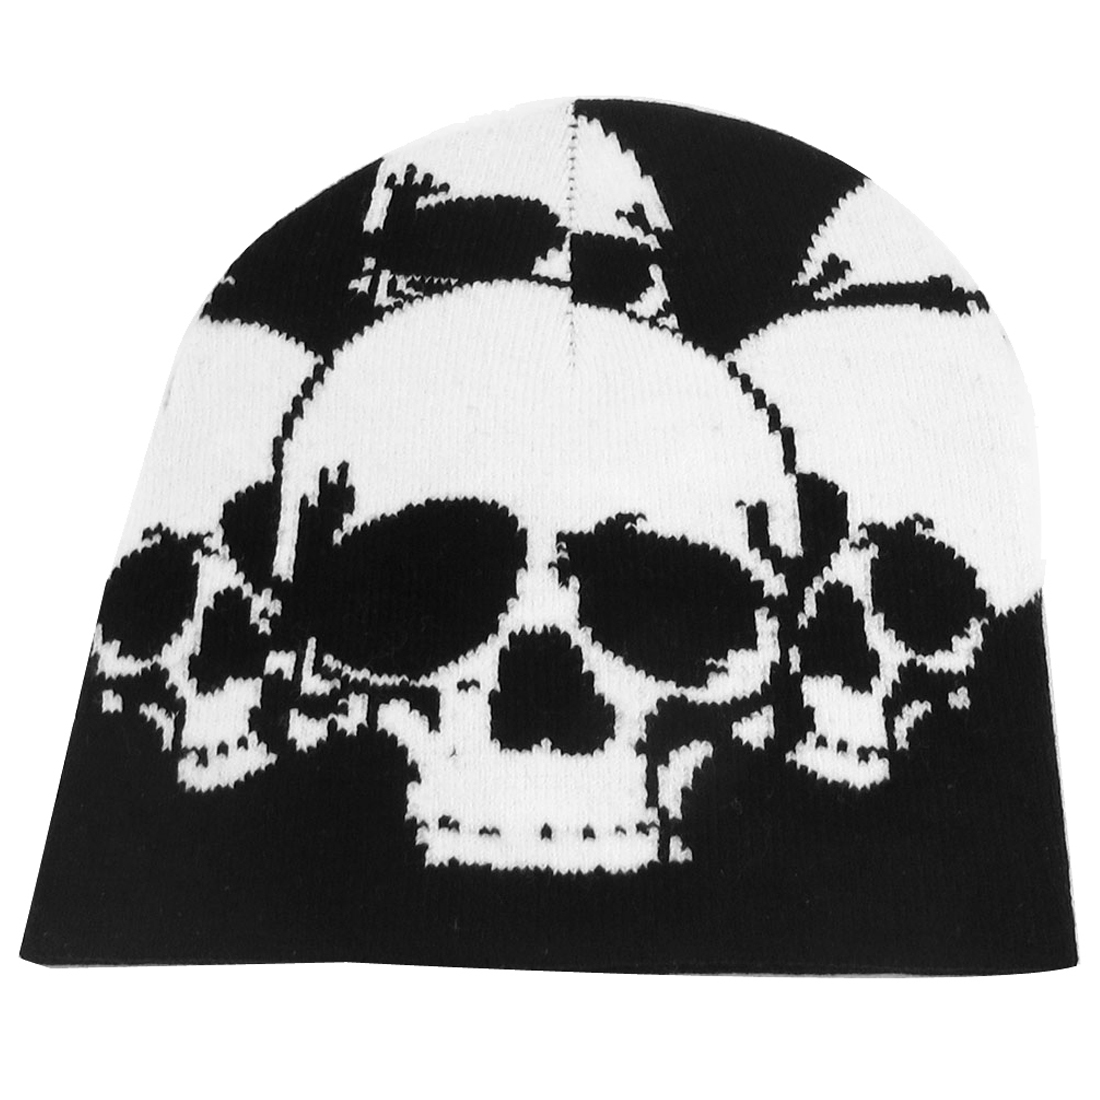 Men Lady Skull Head Pattern Black White Knit Elastic Winter Warmer Beanies Hat Cap